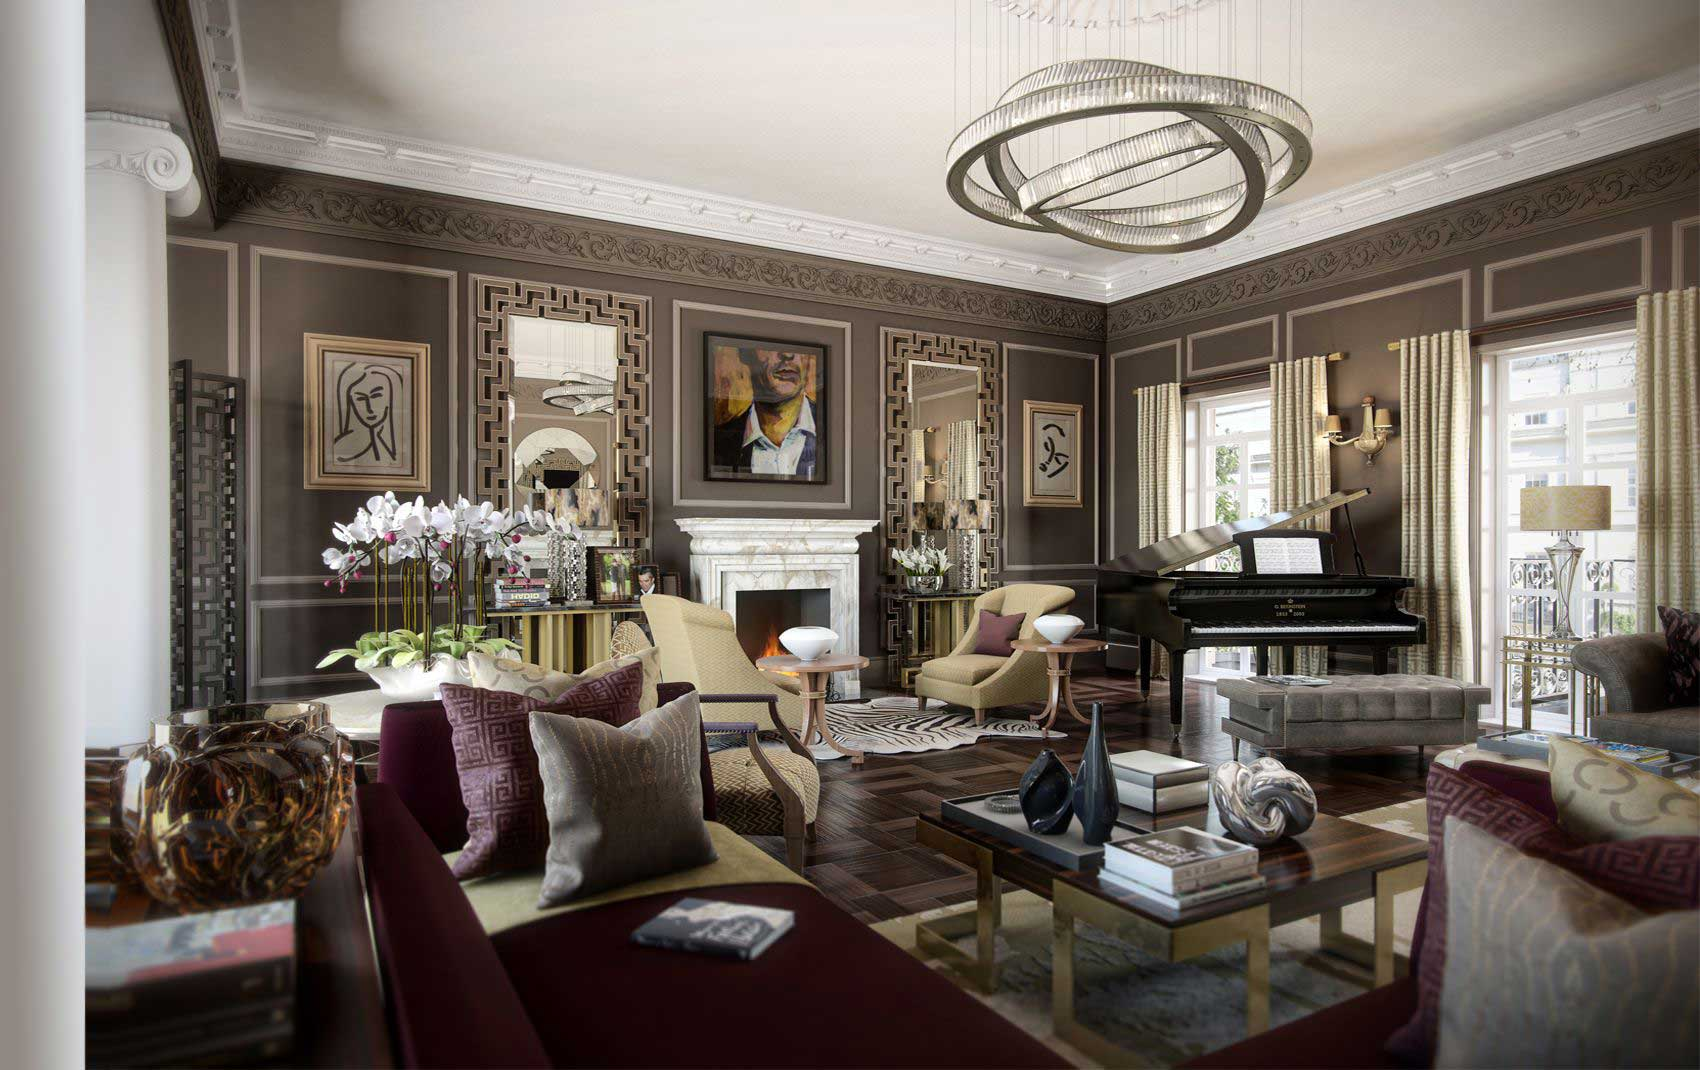 Luxury interior design in london london interior design for Interior design firms london